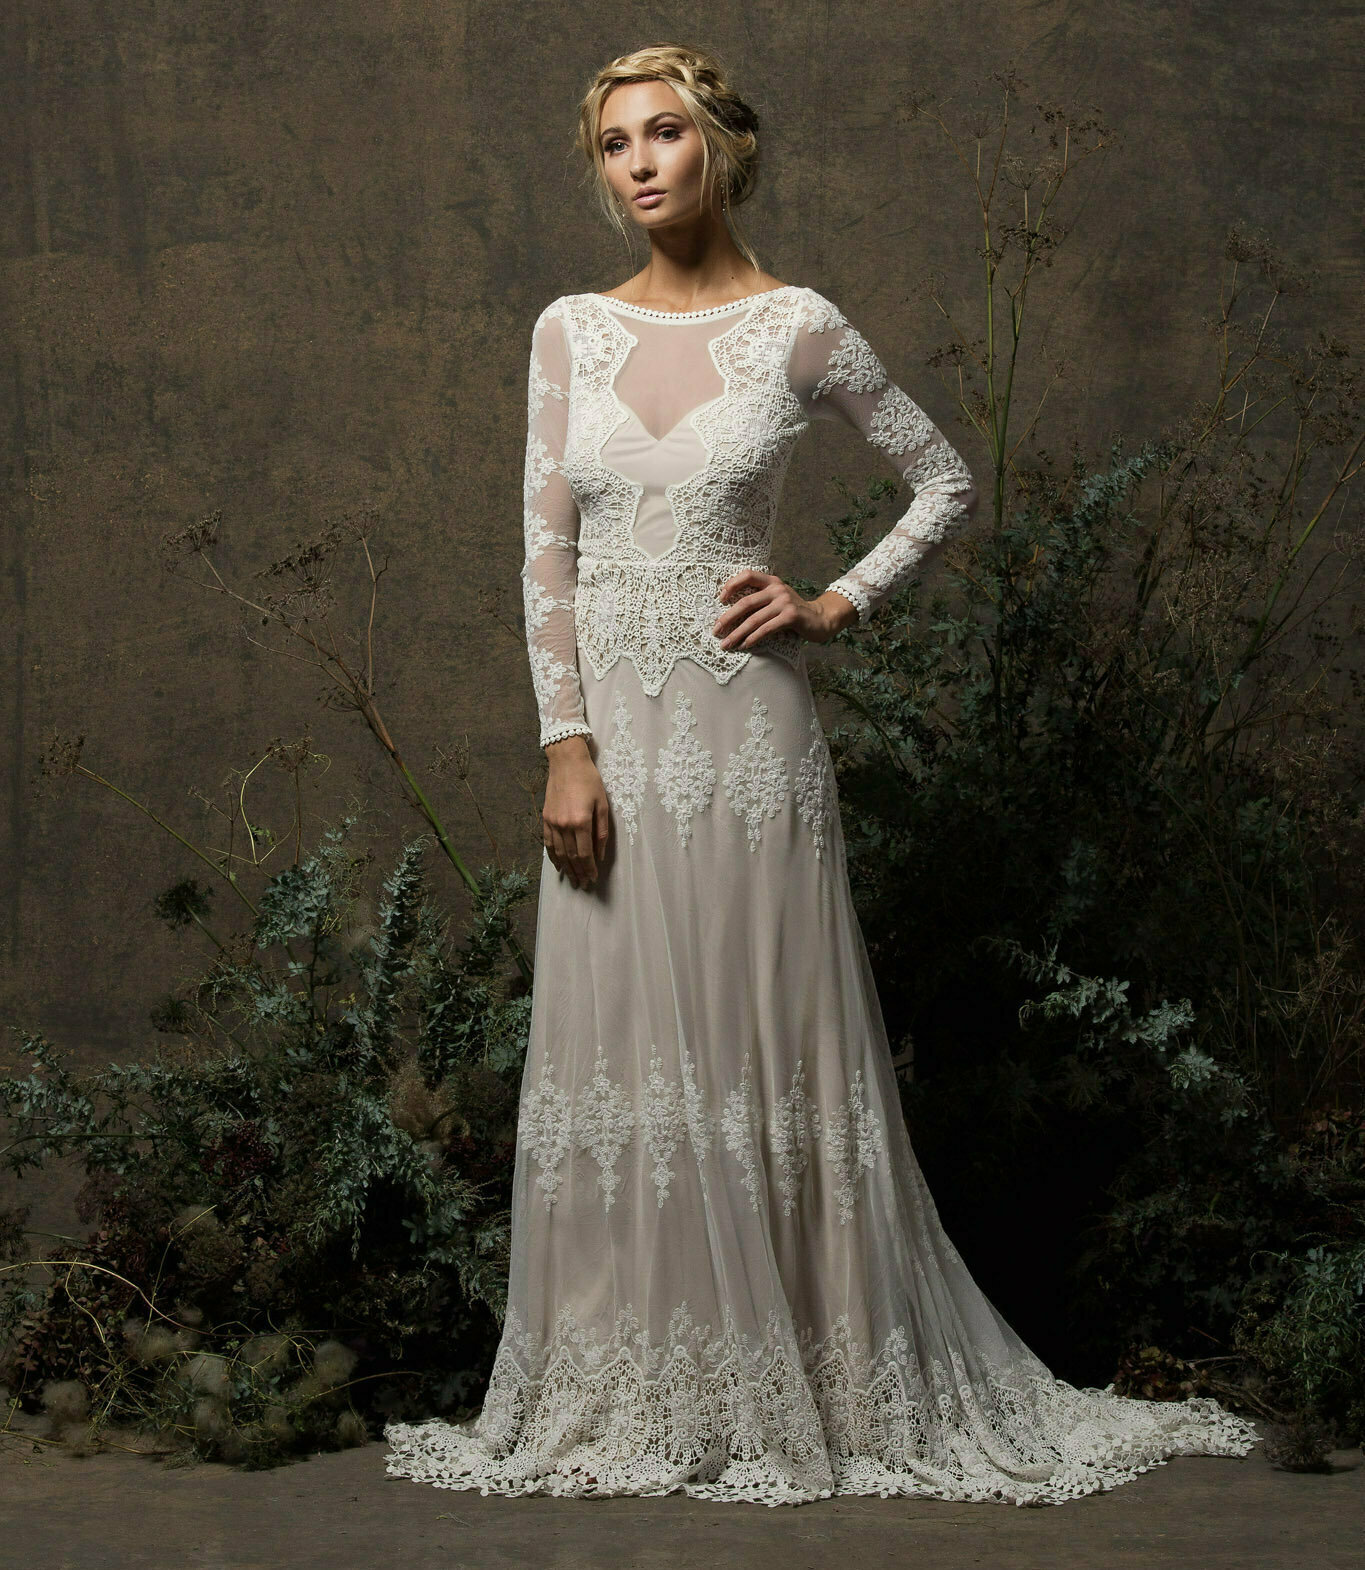 Aurora Long Sleeve Lace Wedding Dress | Dreamers and Lovers